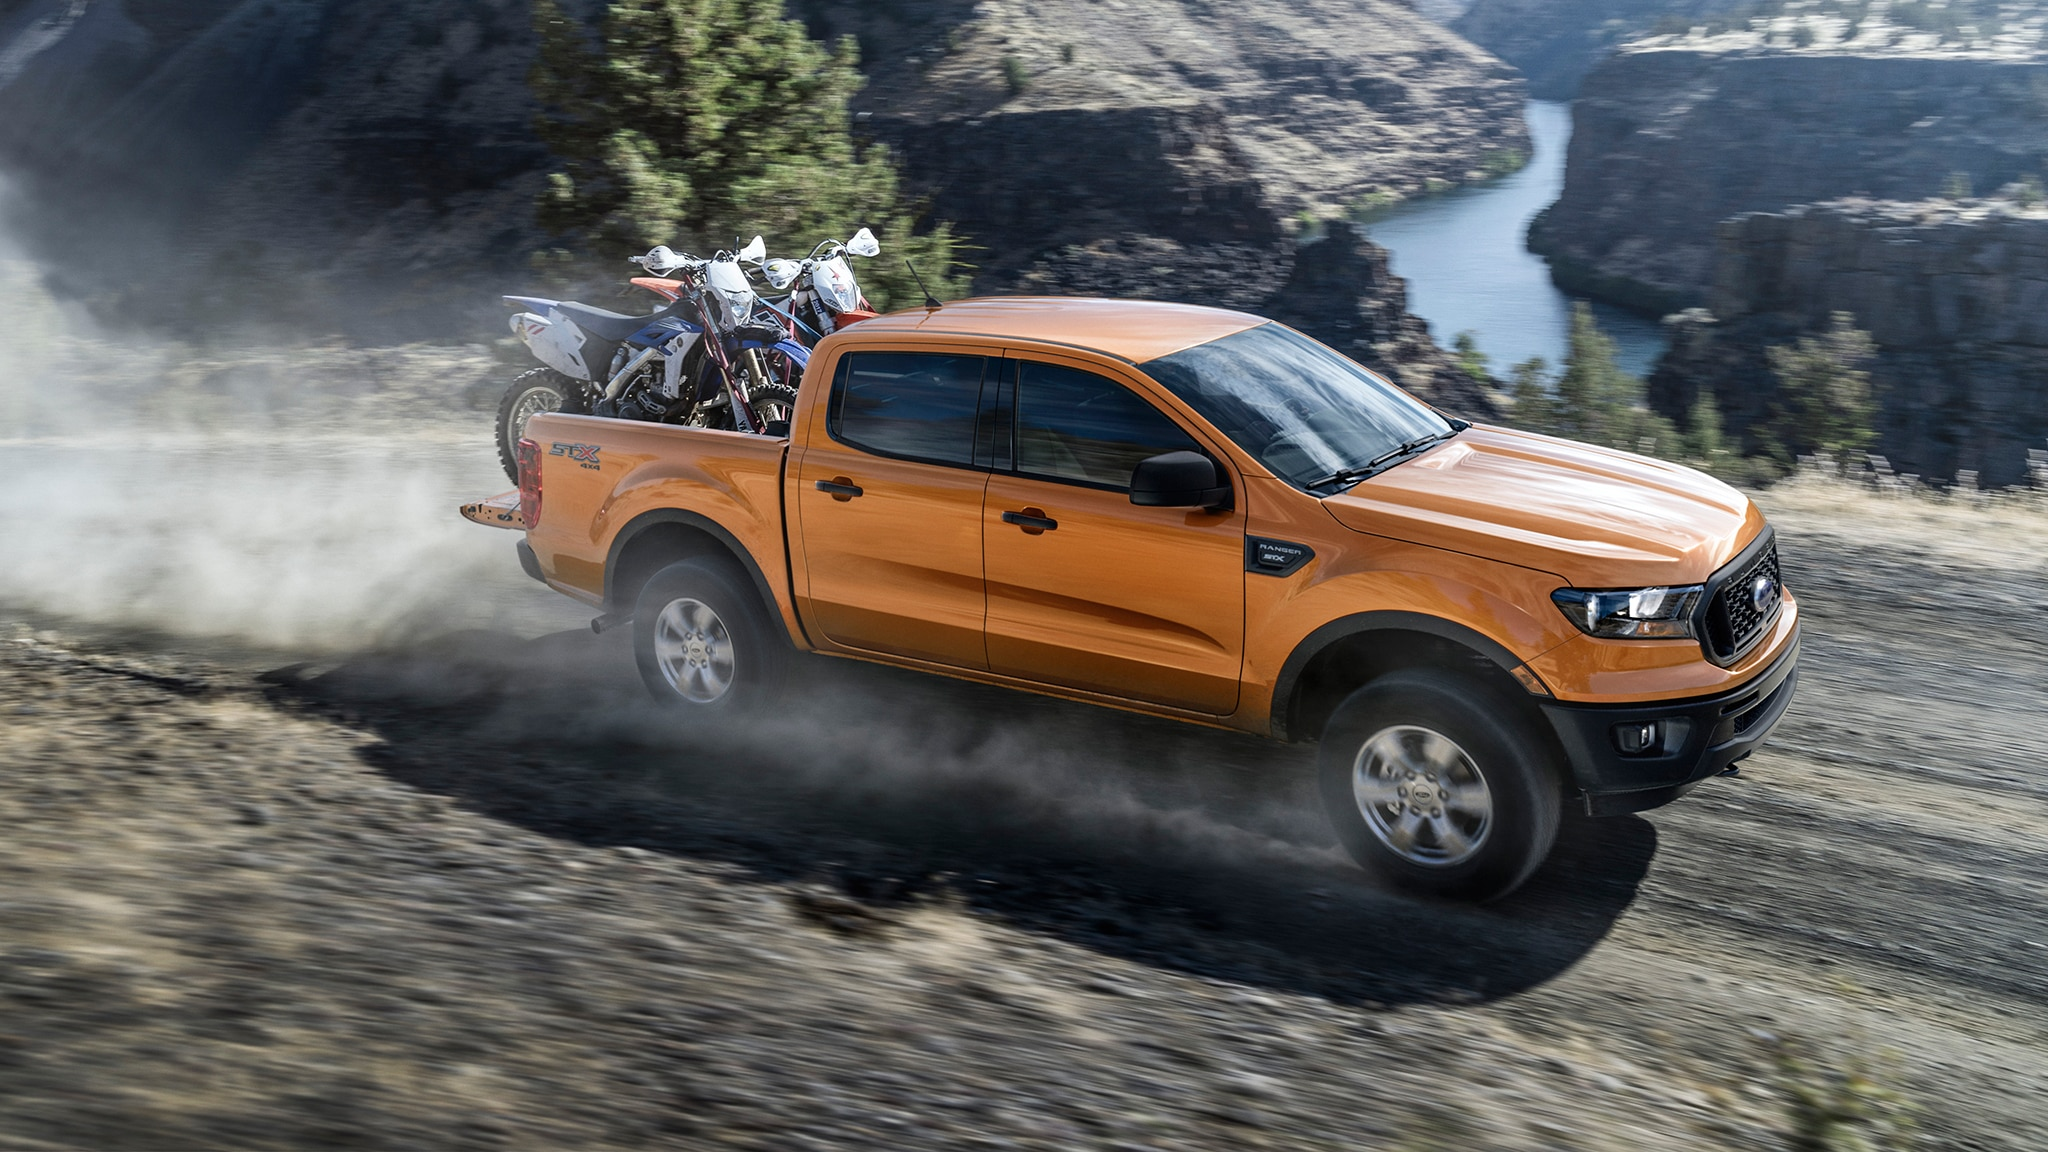 Ford Ranger claims towing and payload titles